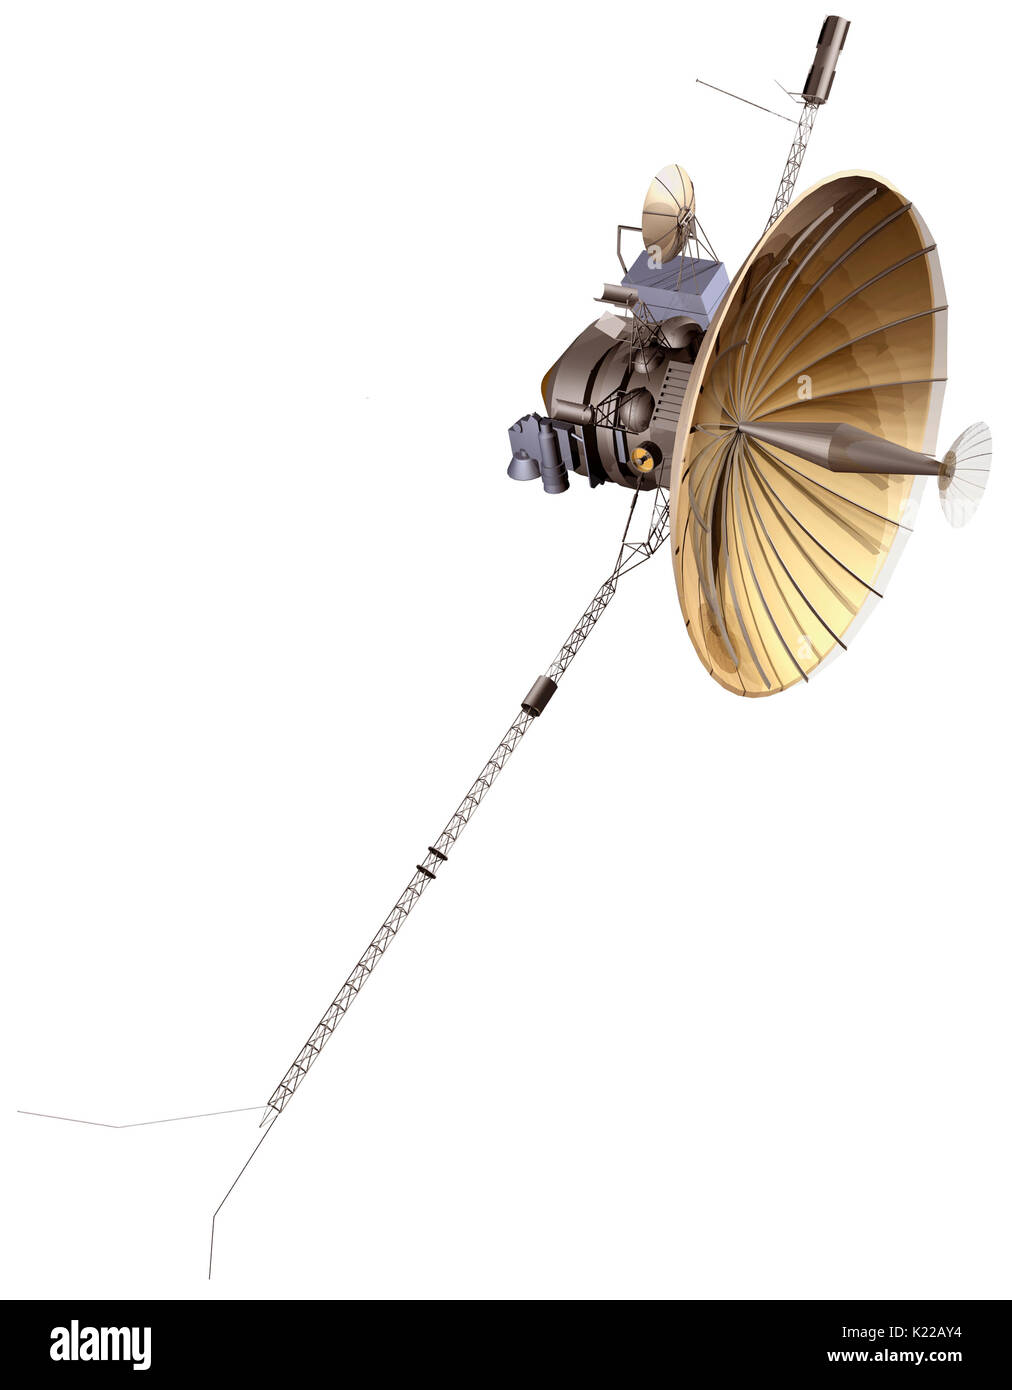 The first probe to thrust into orbit around Jupiter (1995), Galileo also explored the planet's four largest satellites. - Stock Image